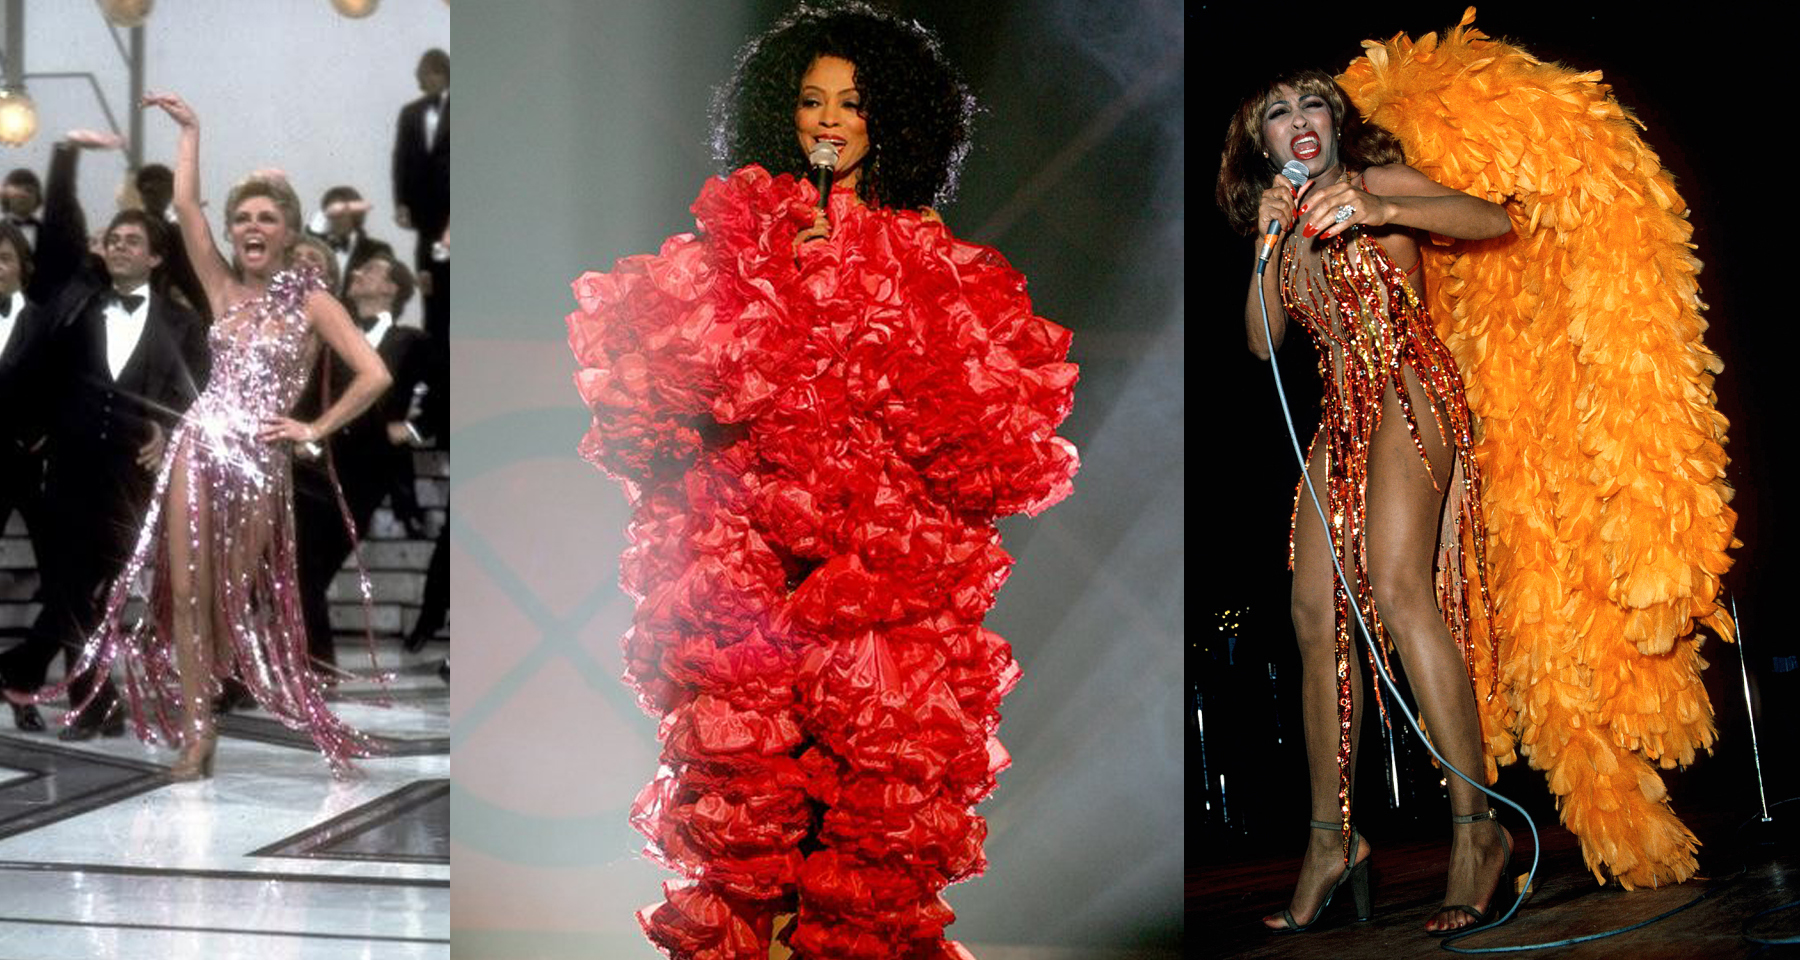 Vintage Style: Get Inspired By This Incredible Diana Ross Outfits vintage style Vintage Style: Get Inspired By This Incredible Diana Ross Outfits 1